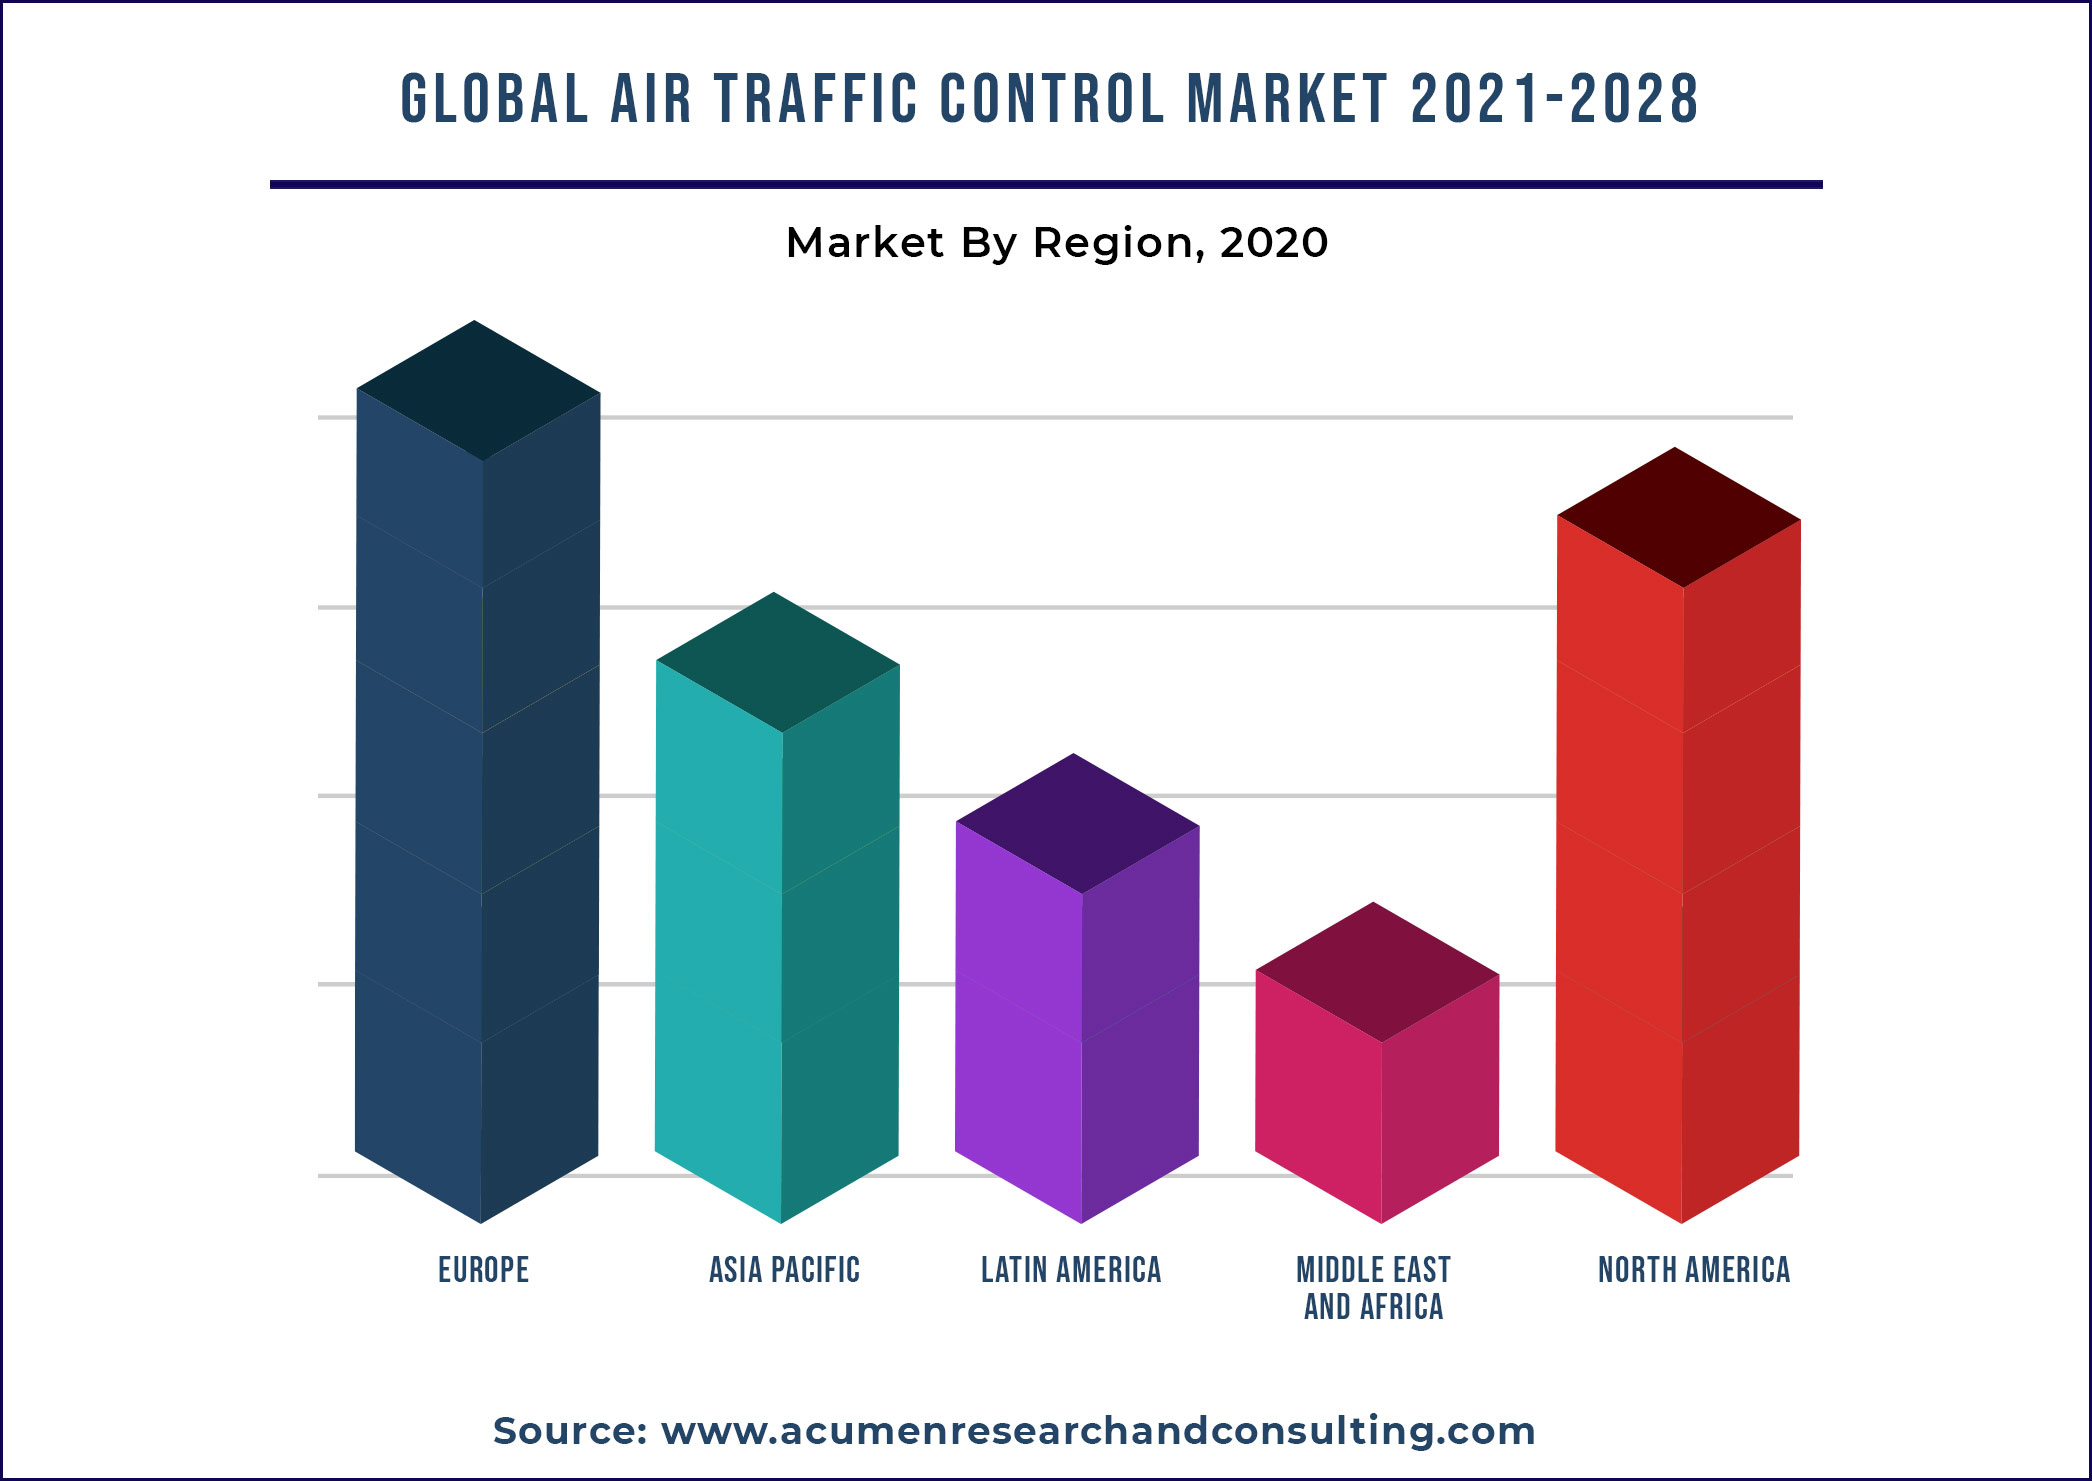 Air Traffic Control Market By Geography 2021-2028